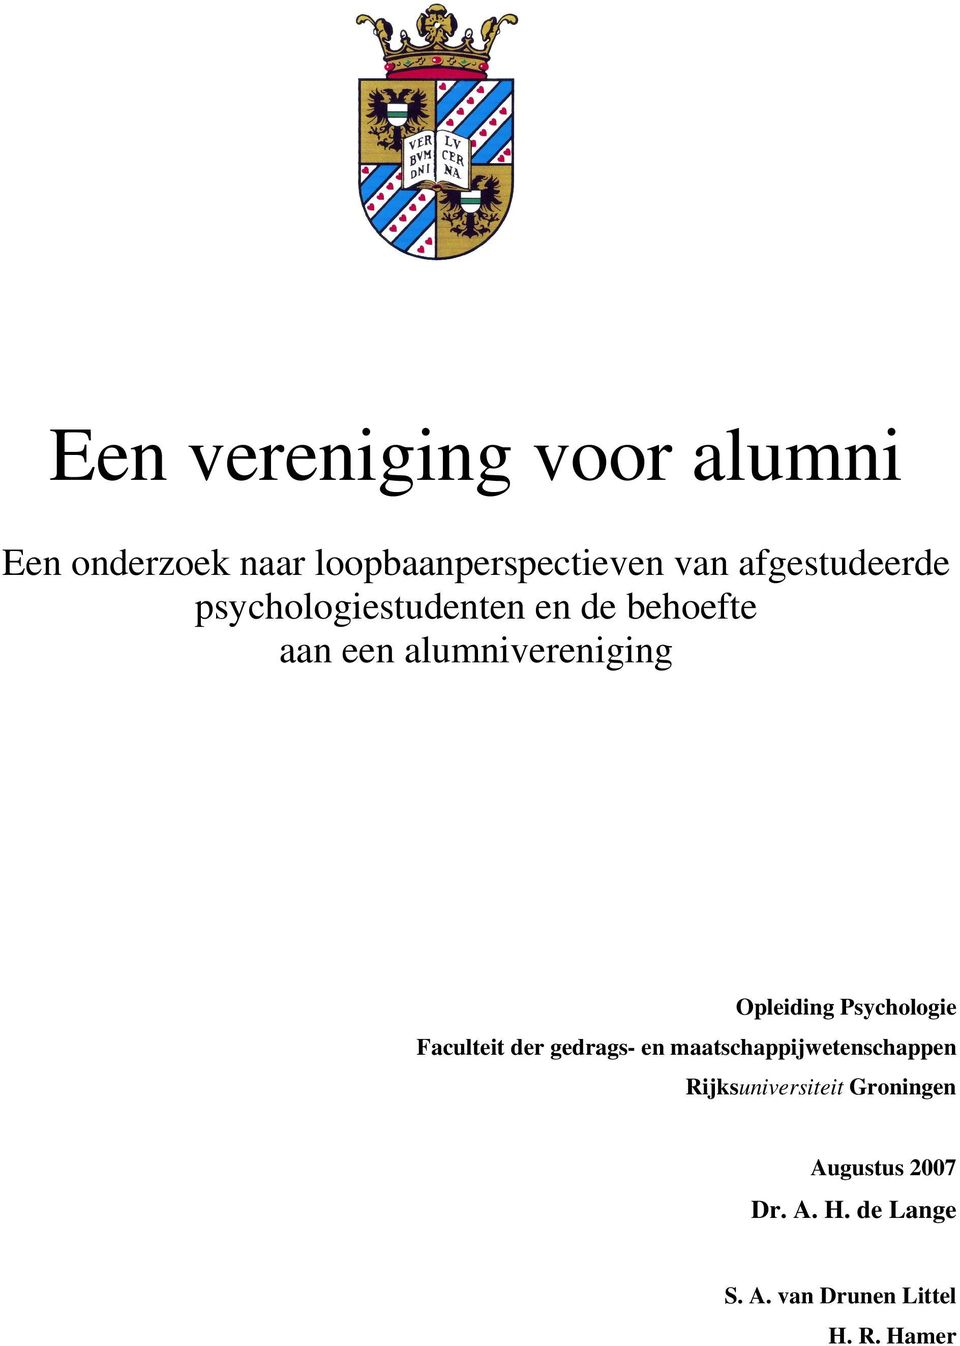 alumnivereniging Opleiding Psychologie Faculteit der gedrags- en